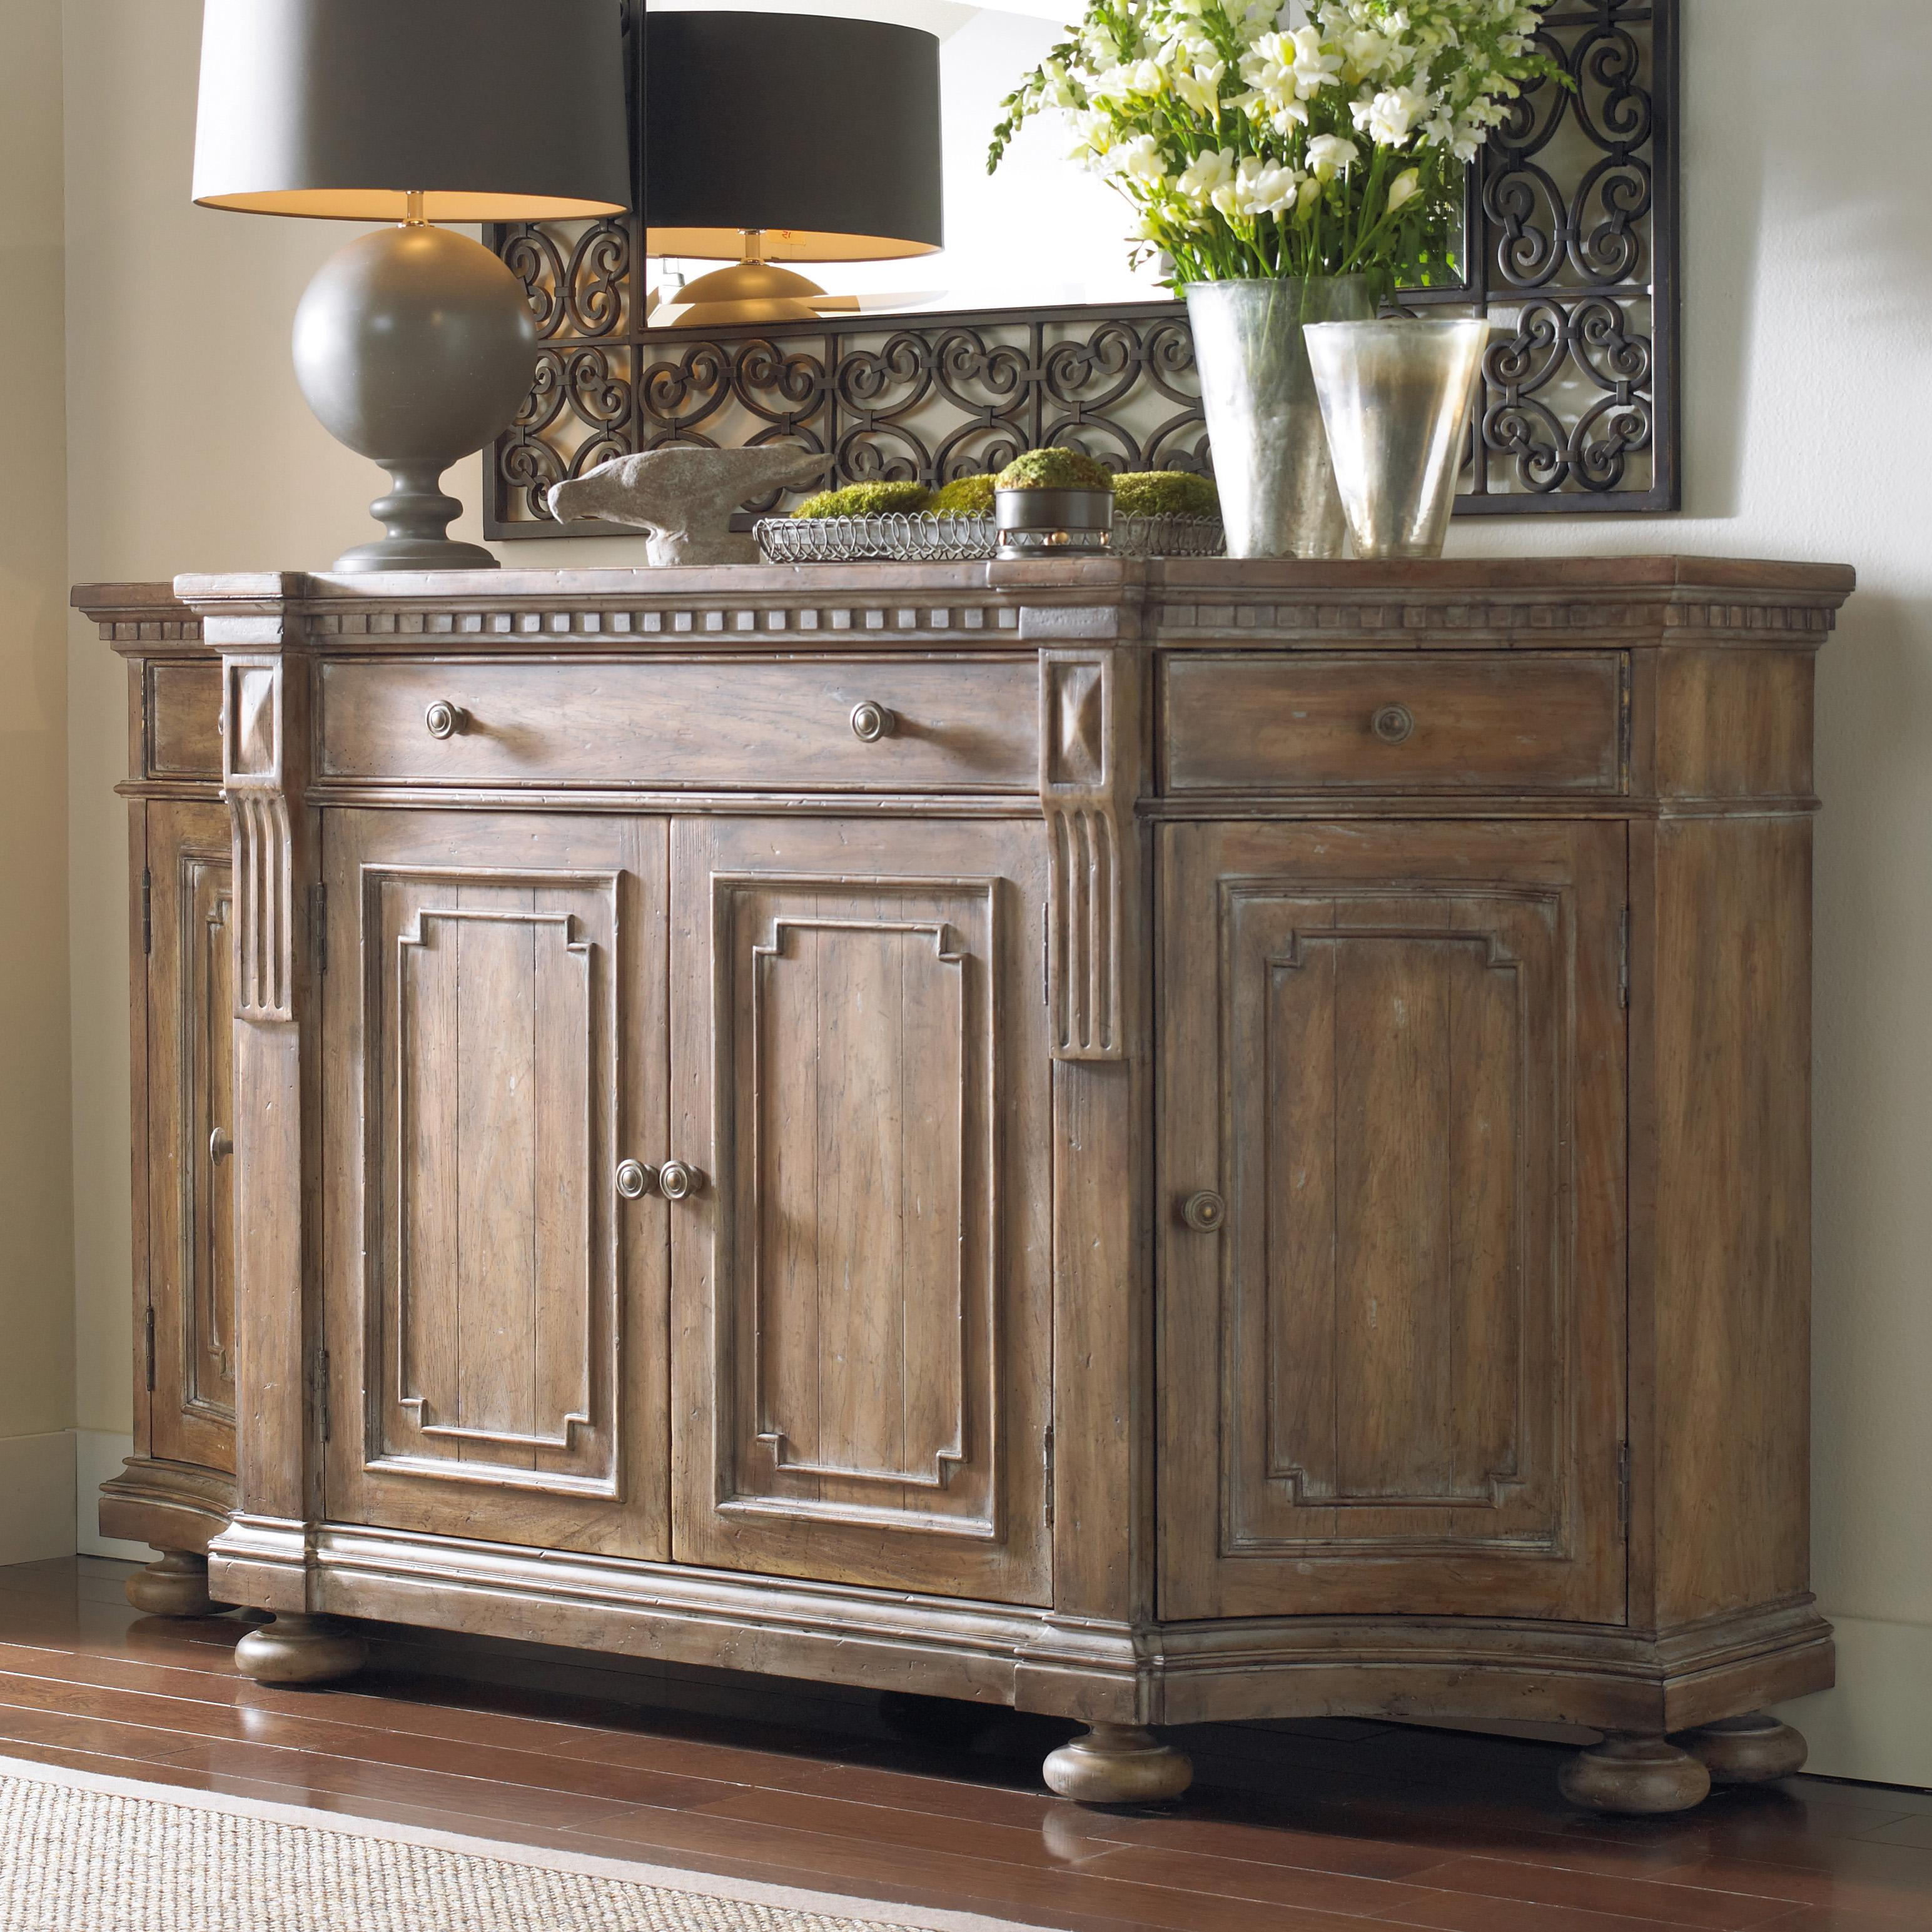 Shaped credenza with concave side doors decorative panels for Credenza furniture